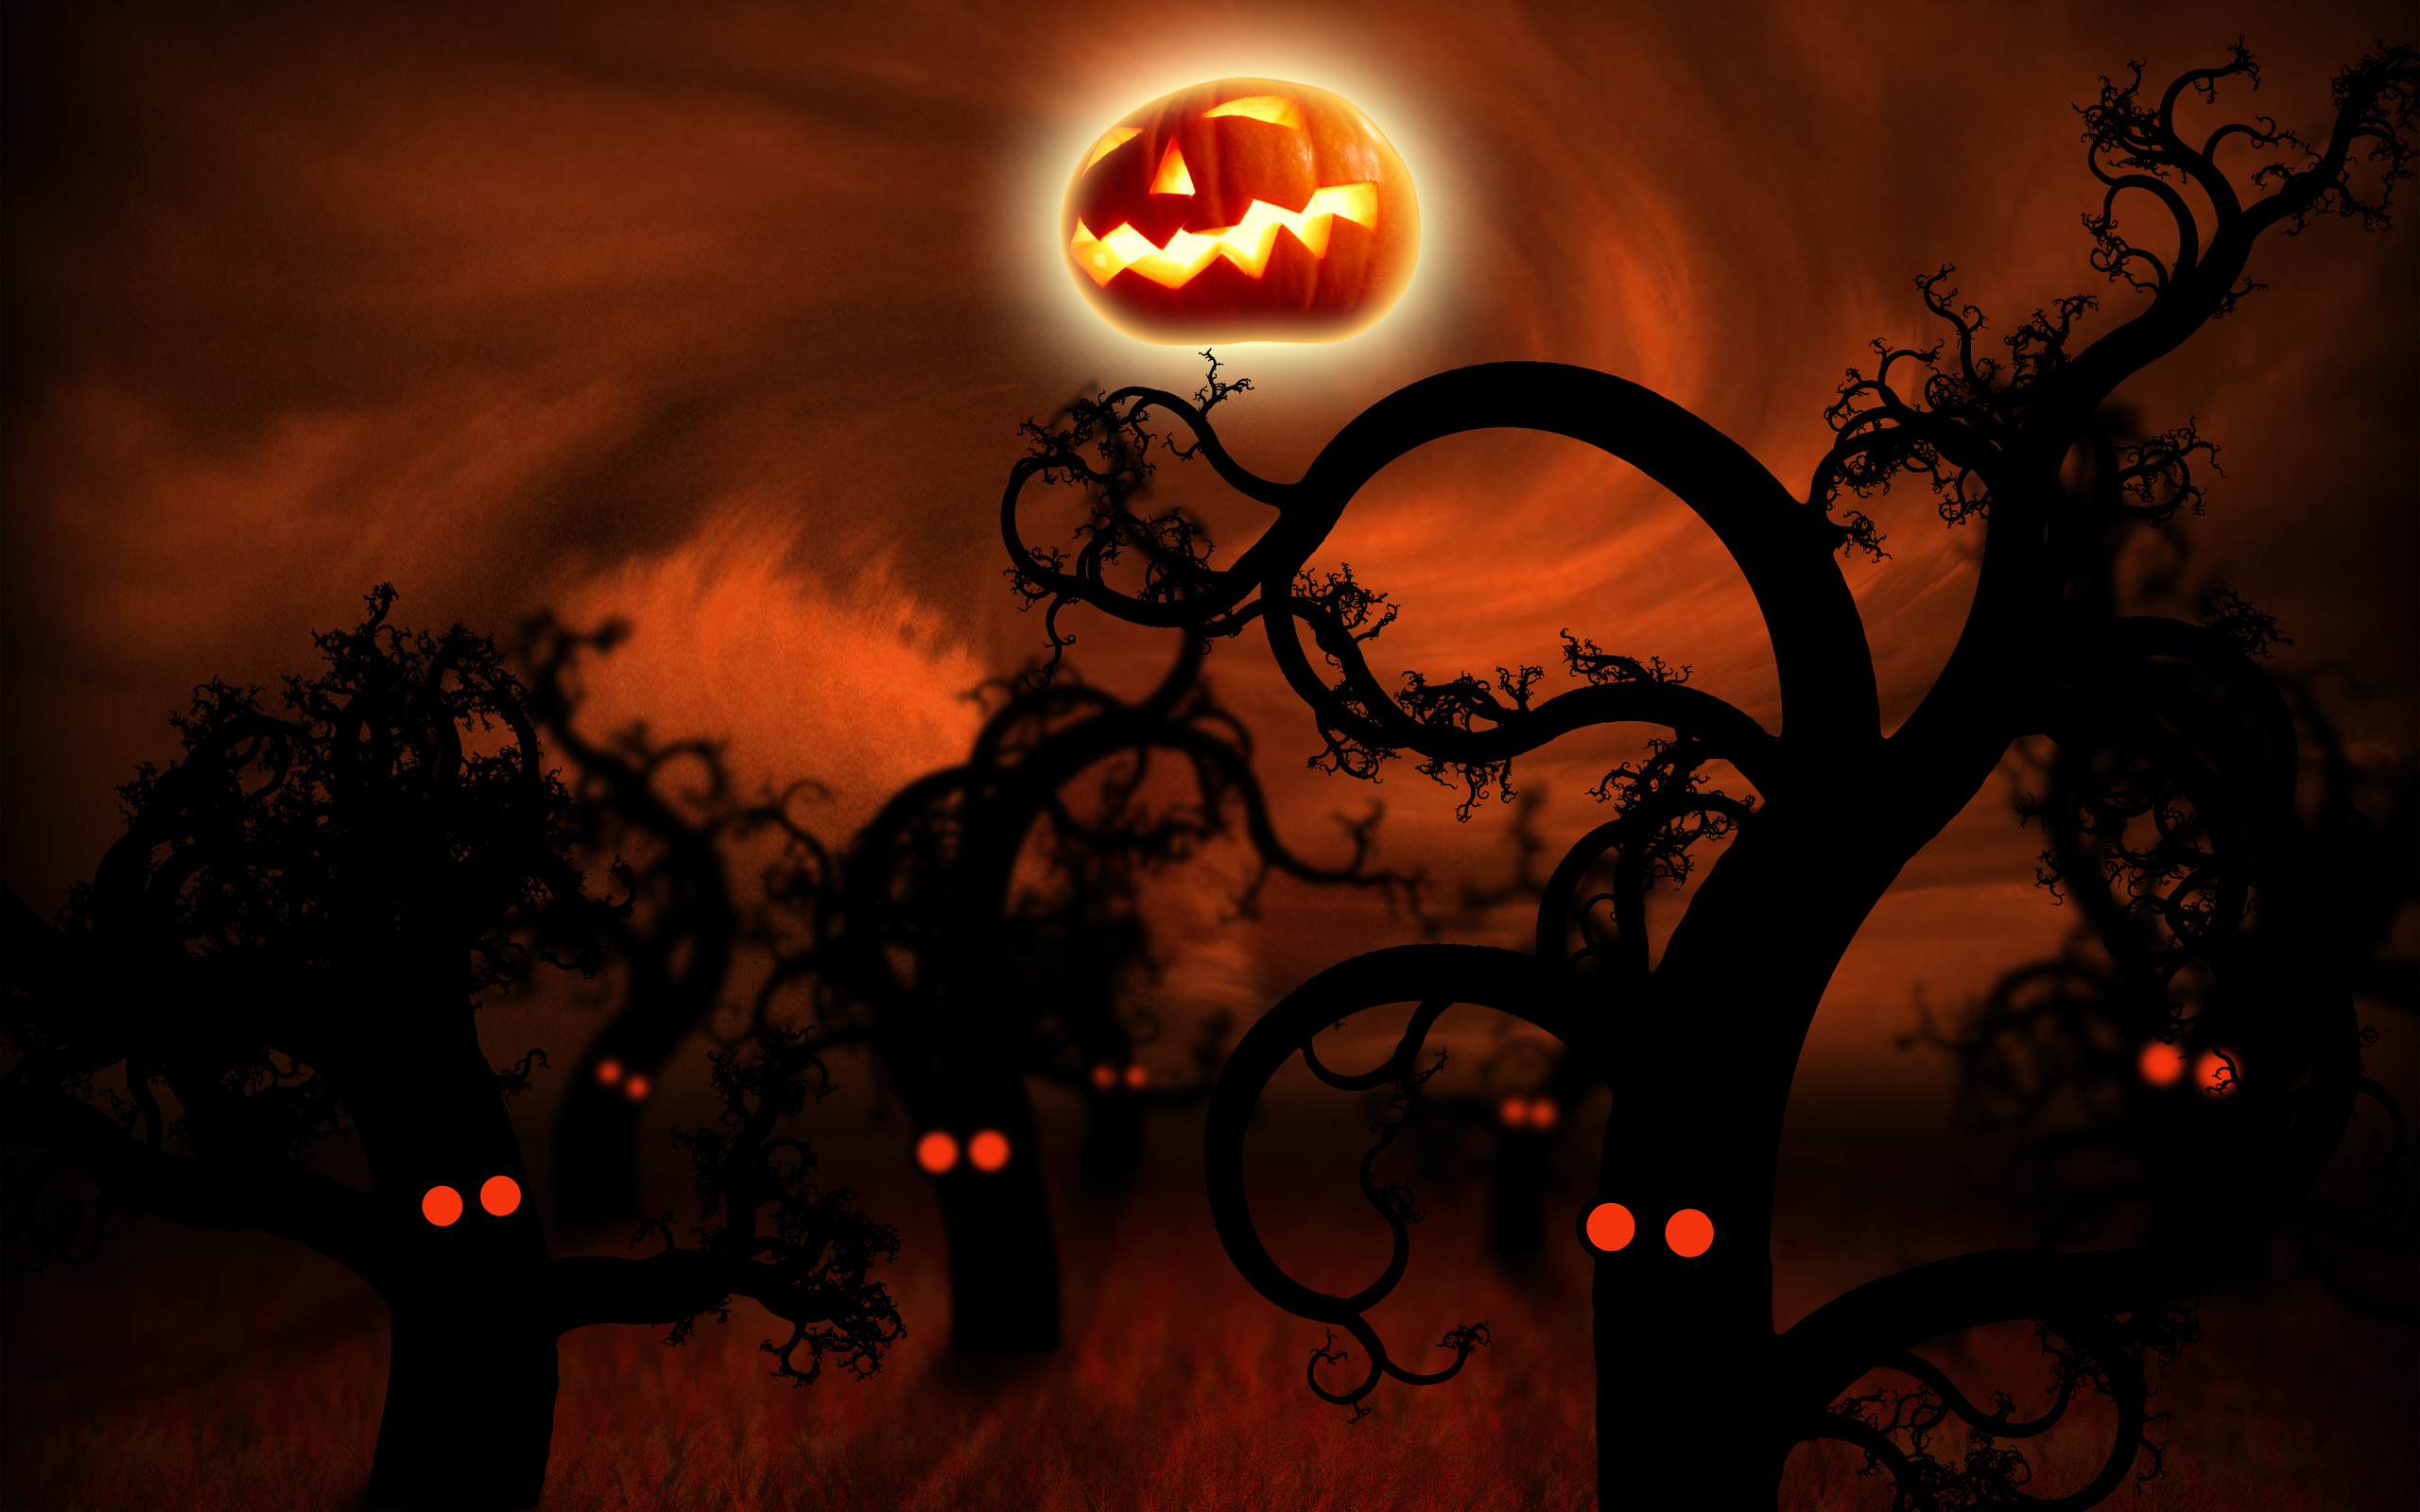 Midnight Forest Halloween Wallpapers HD Wallpapers 2560x1600